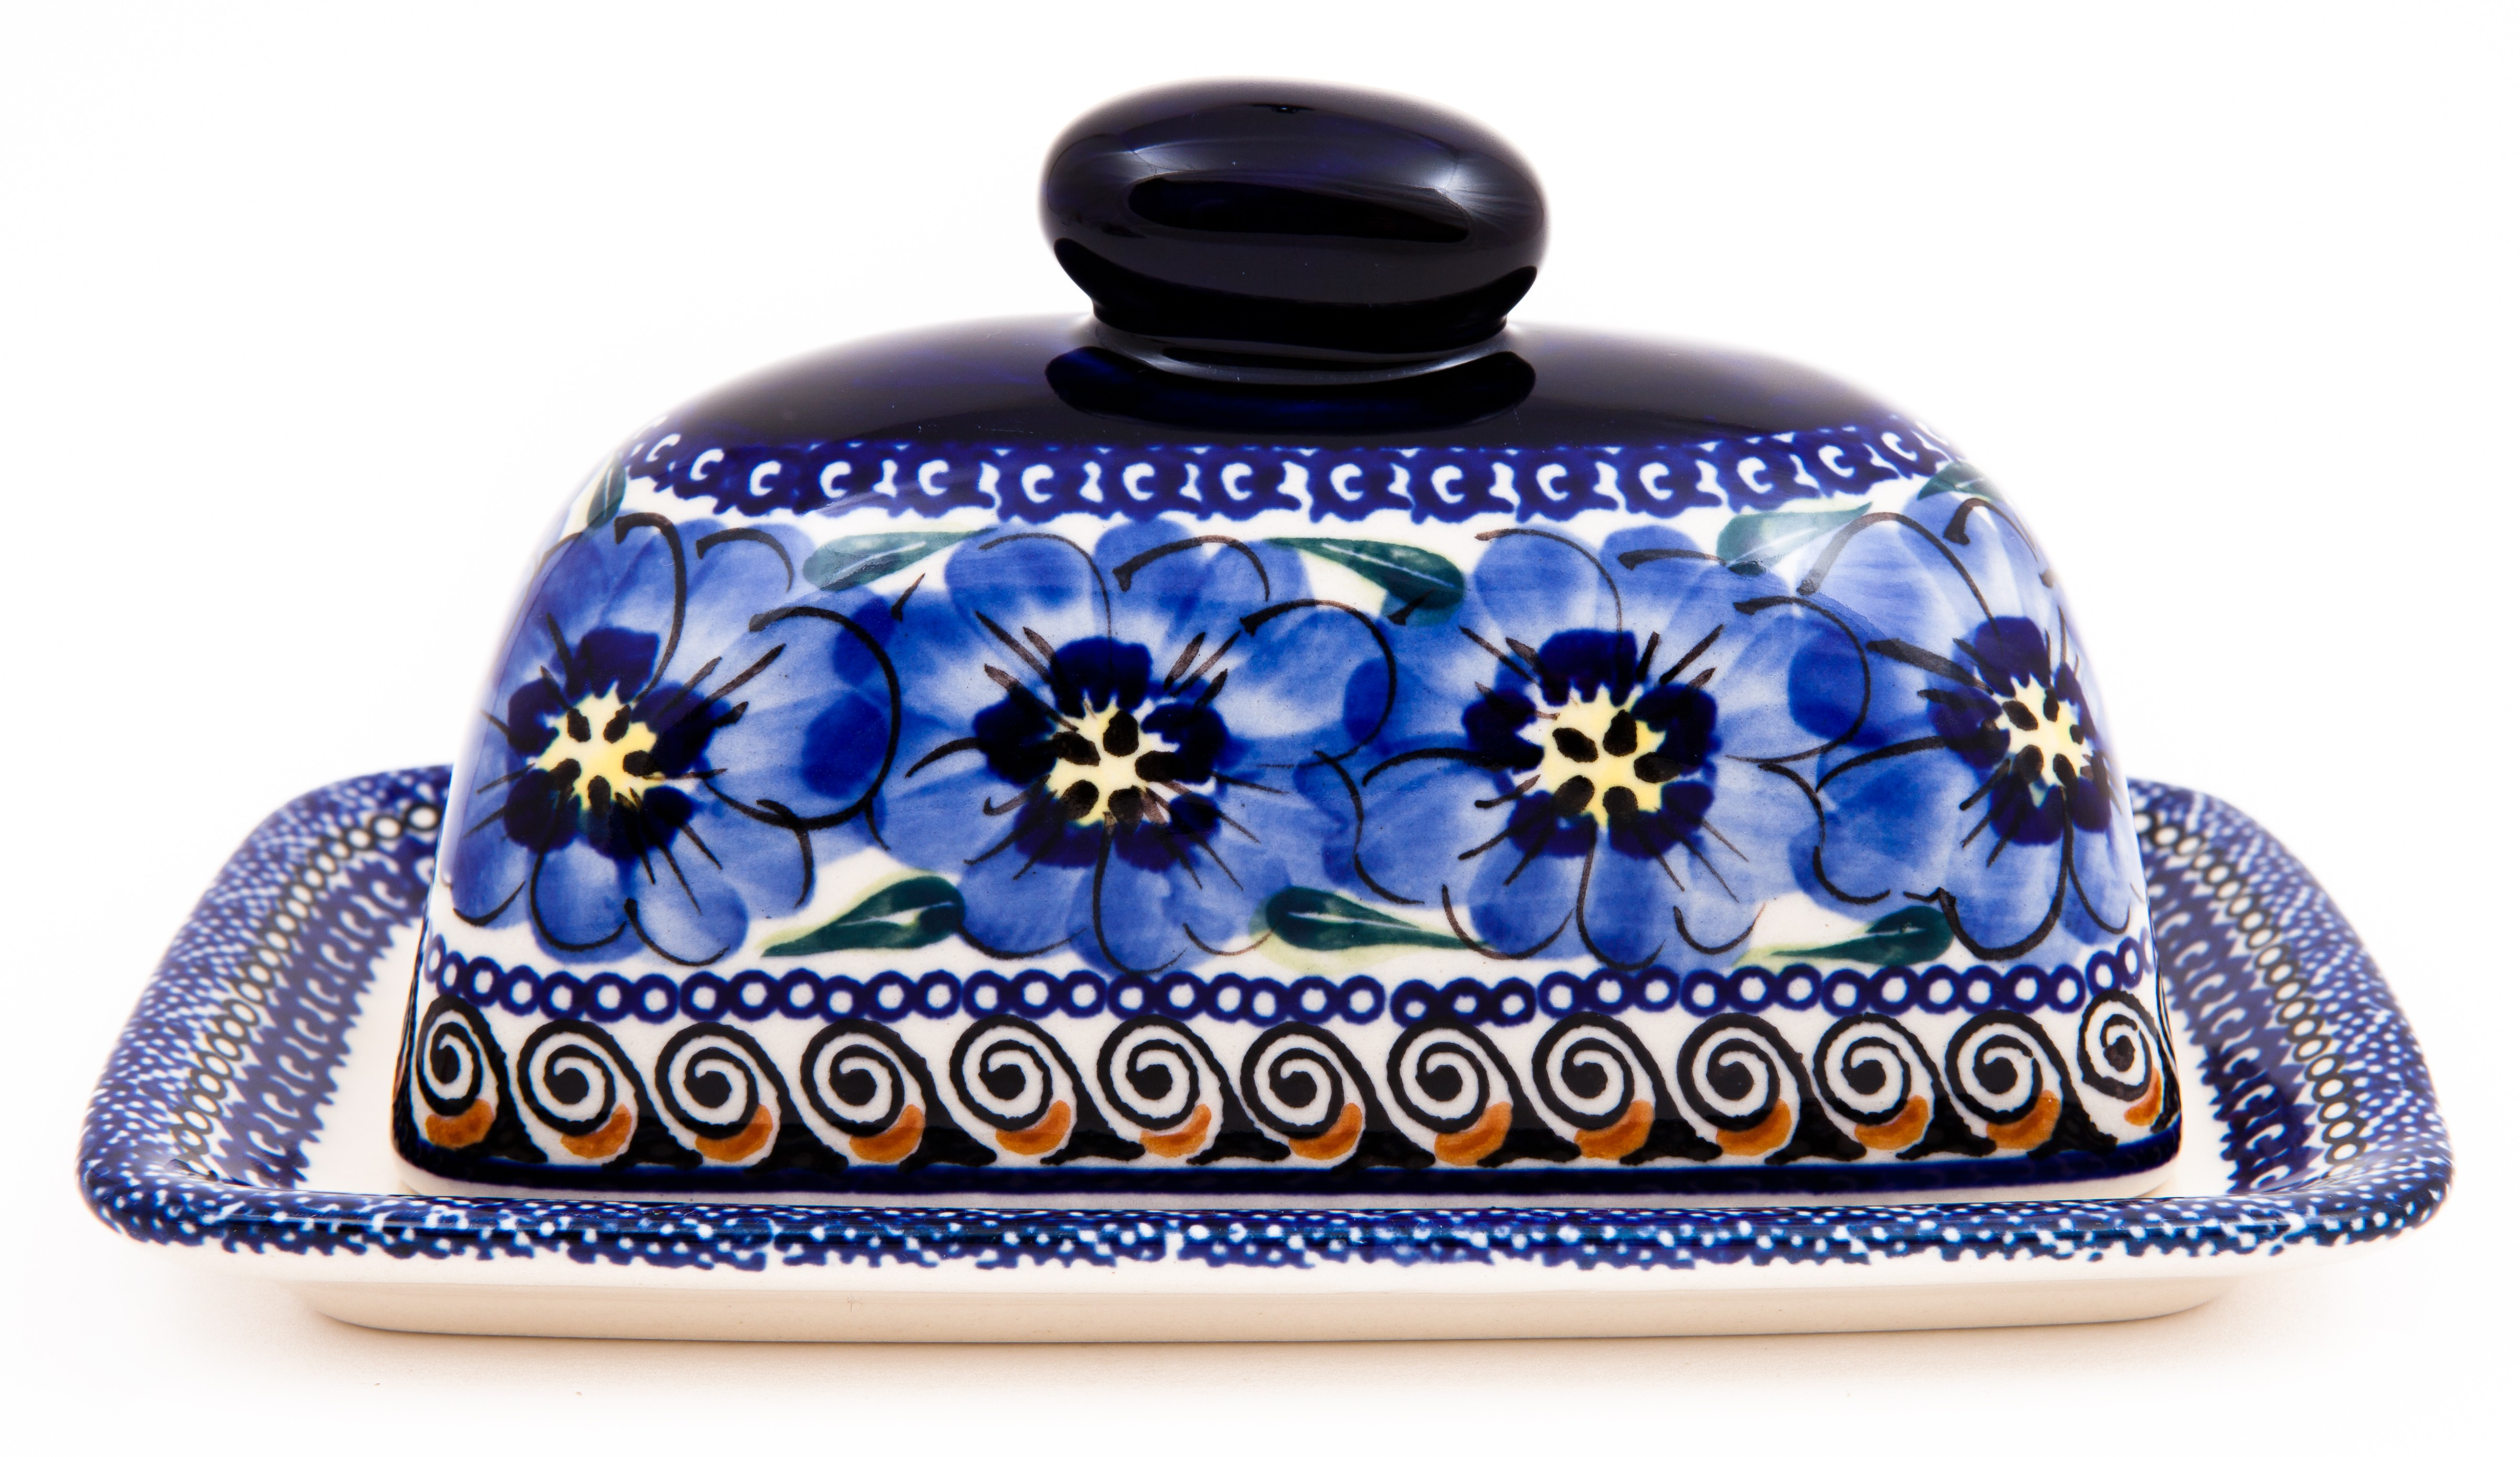 Pottery Avenue 2pc Covered Stoneware Butter Dish - 1377-148AR Blue Pansy